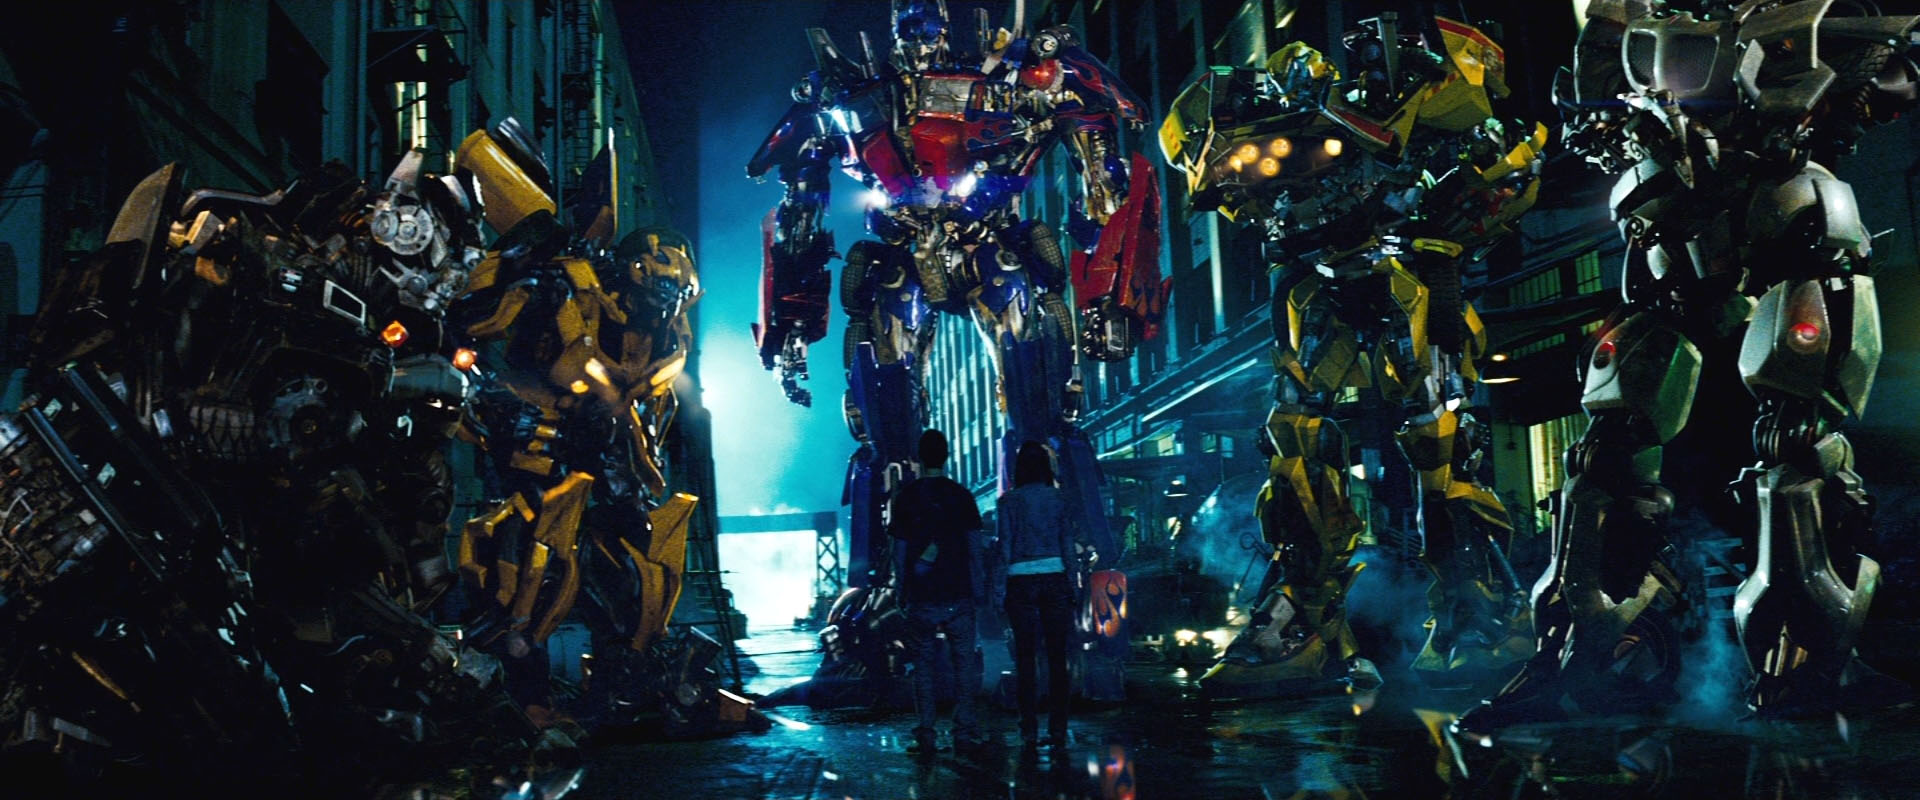 HD screencaps requests-transformers-blu-ray-0677.jpg